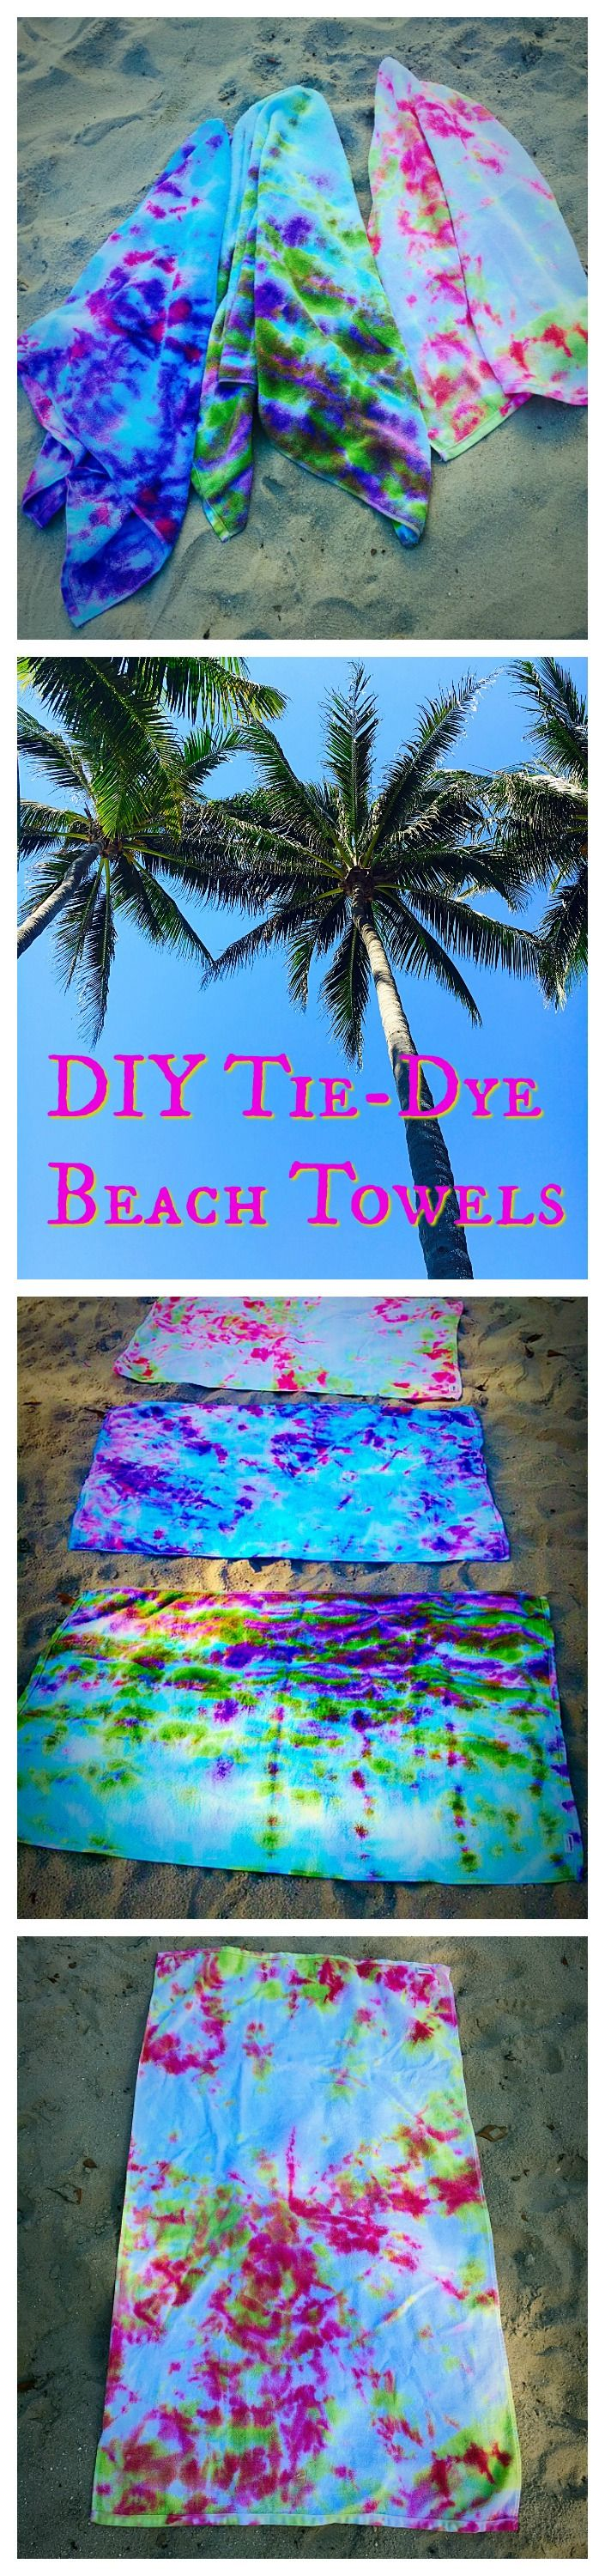 DIY your Christmas gifts this year with GLAMULET. they are 100% compatible with Pandora bracelets. So fun for Summer! Tie-Dye Beach Towels!